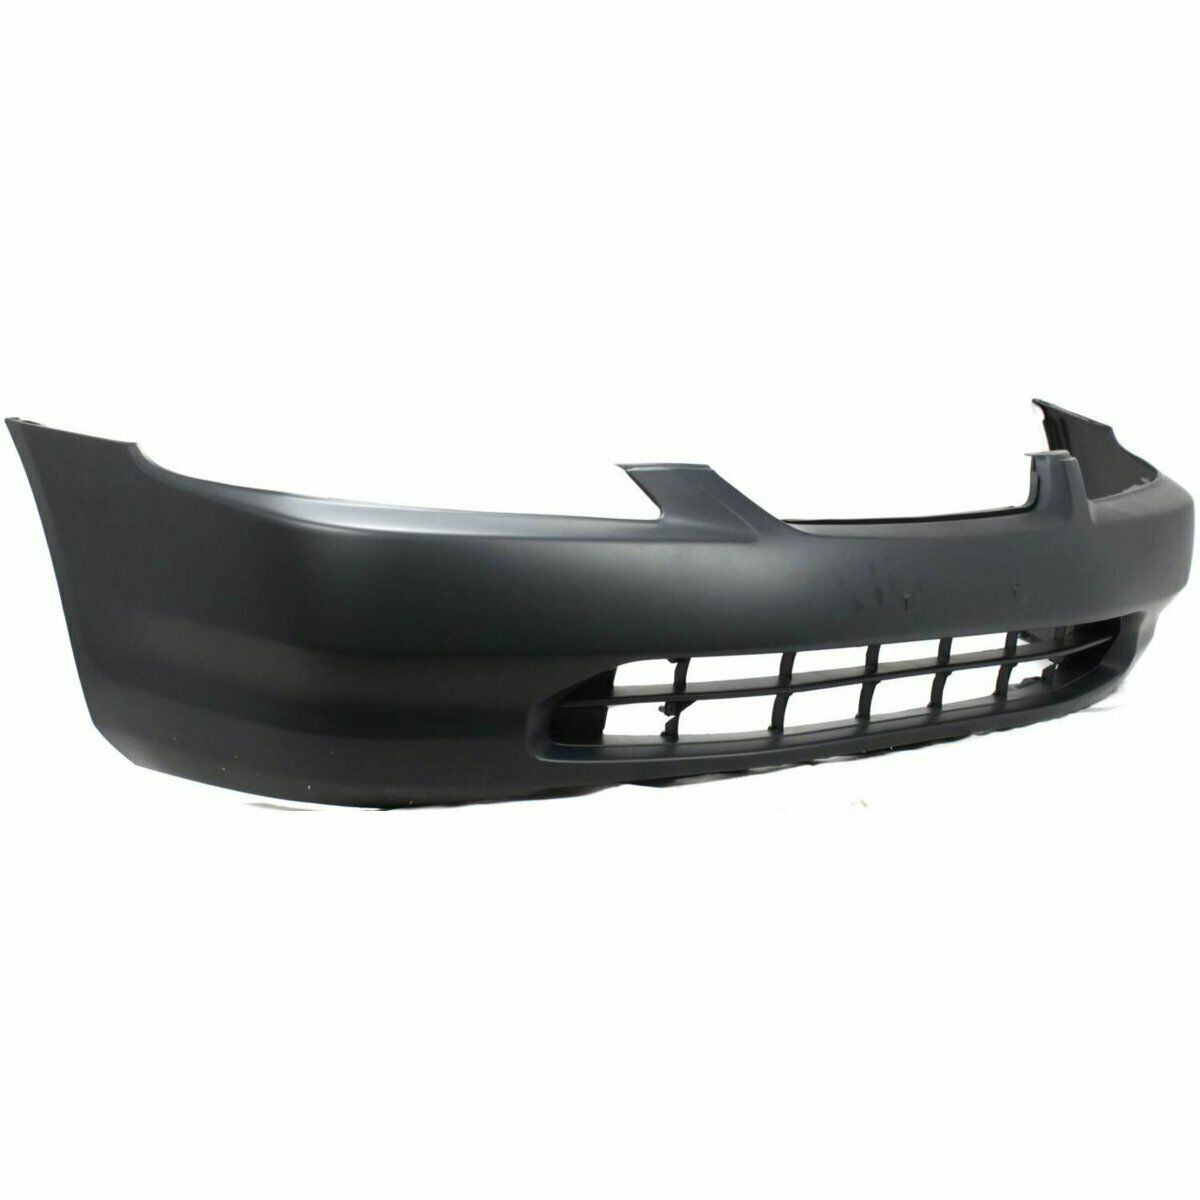 1998-2000 Honda Accord Coupe Front Bumper Painted to Match